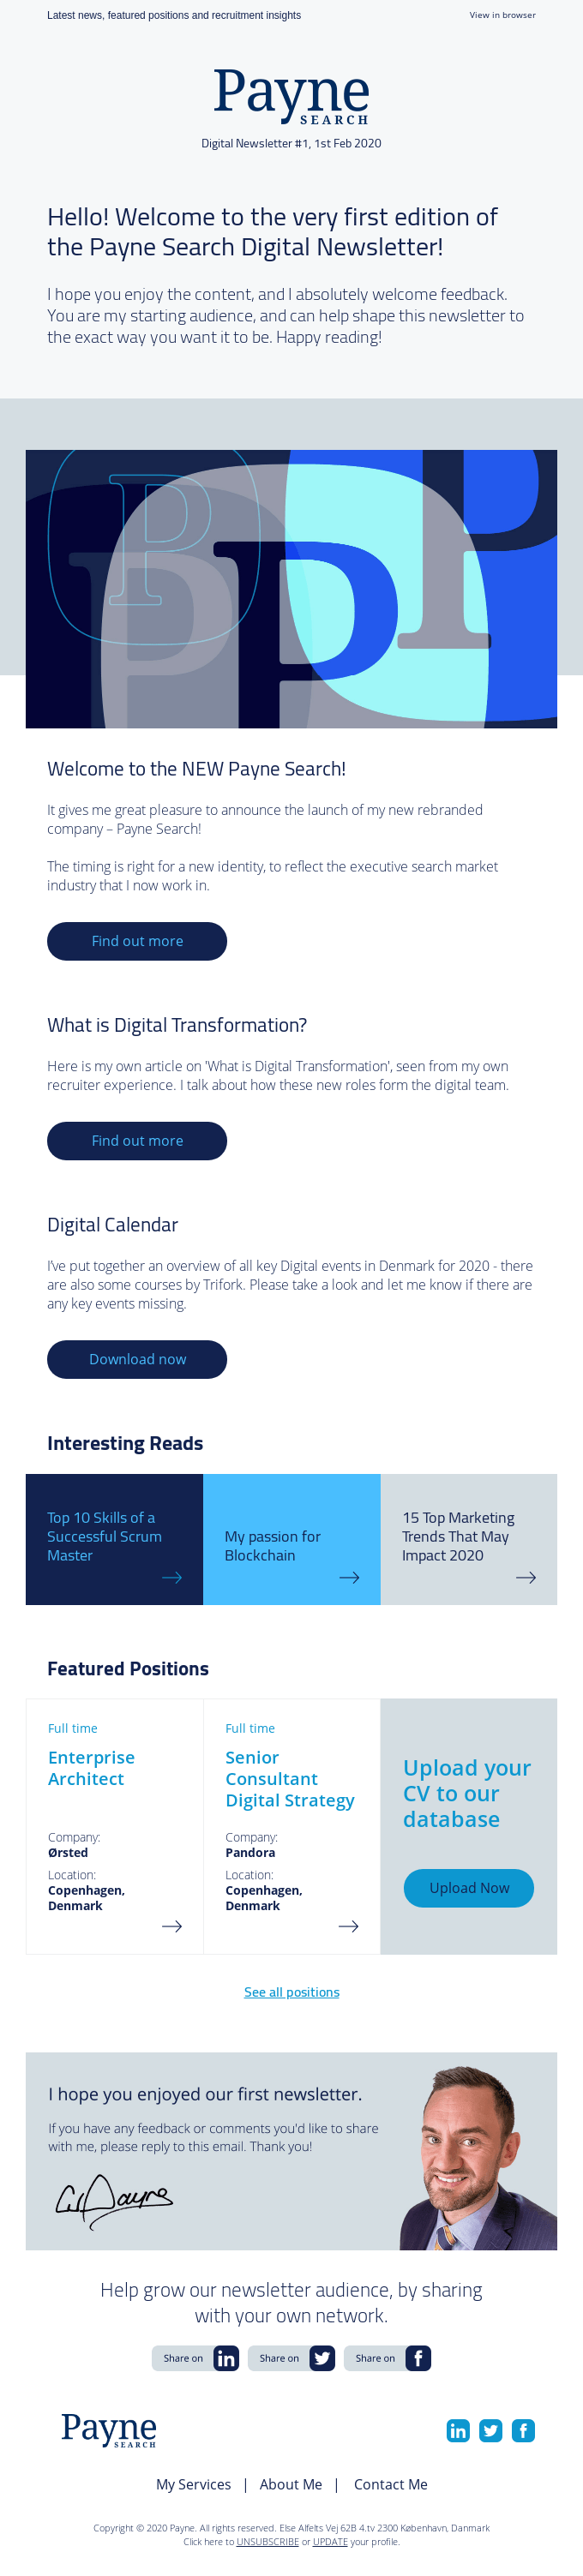 Digital Newsletter from Payne Search! – 1st Edition